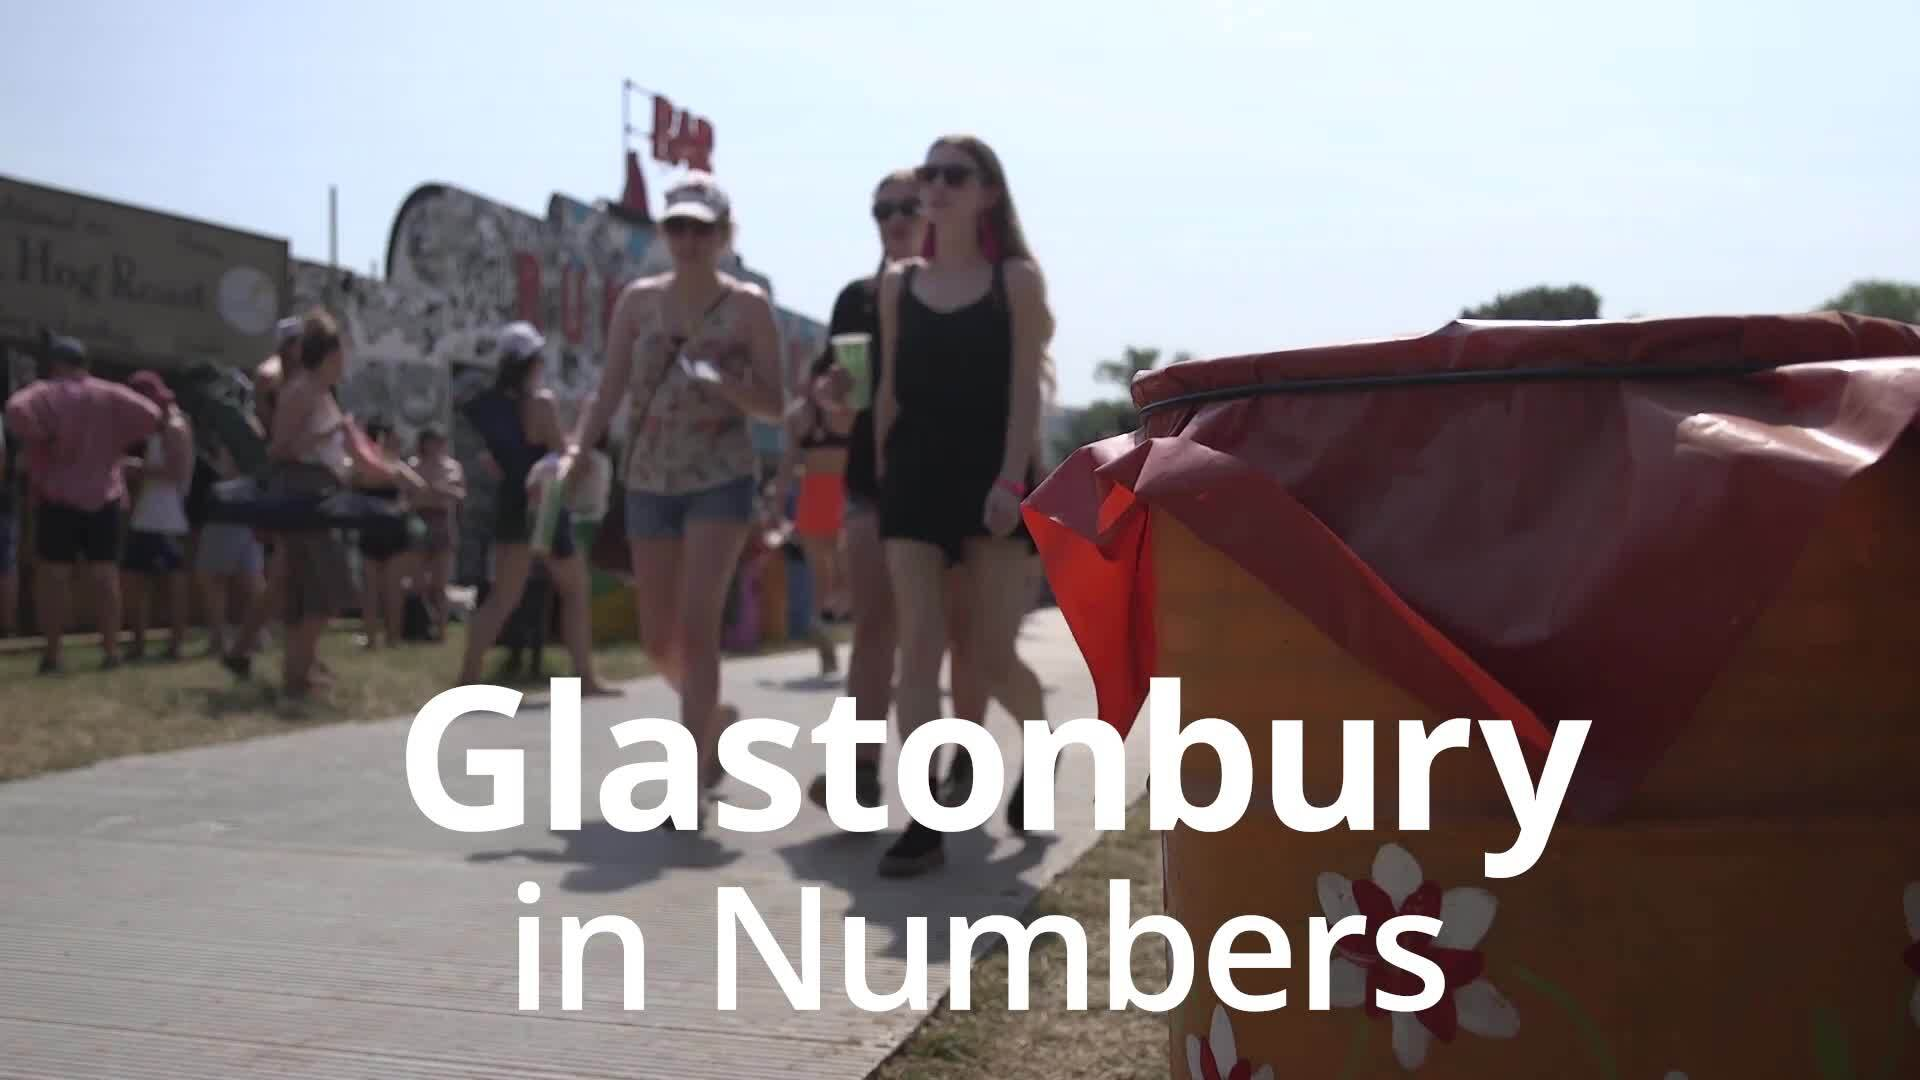 Glastonbury plastic bottles ban 2019: Has Glasto gone plastic free? Which single use plastics has the festival banned?